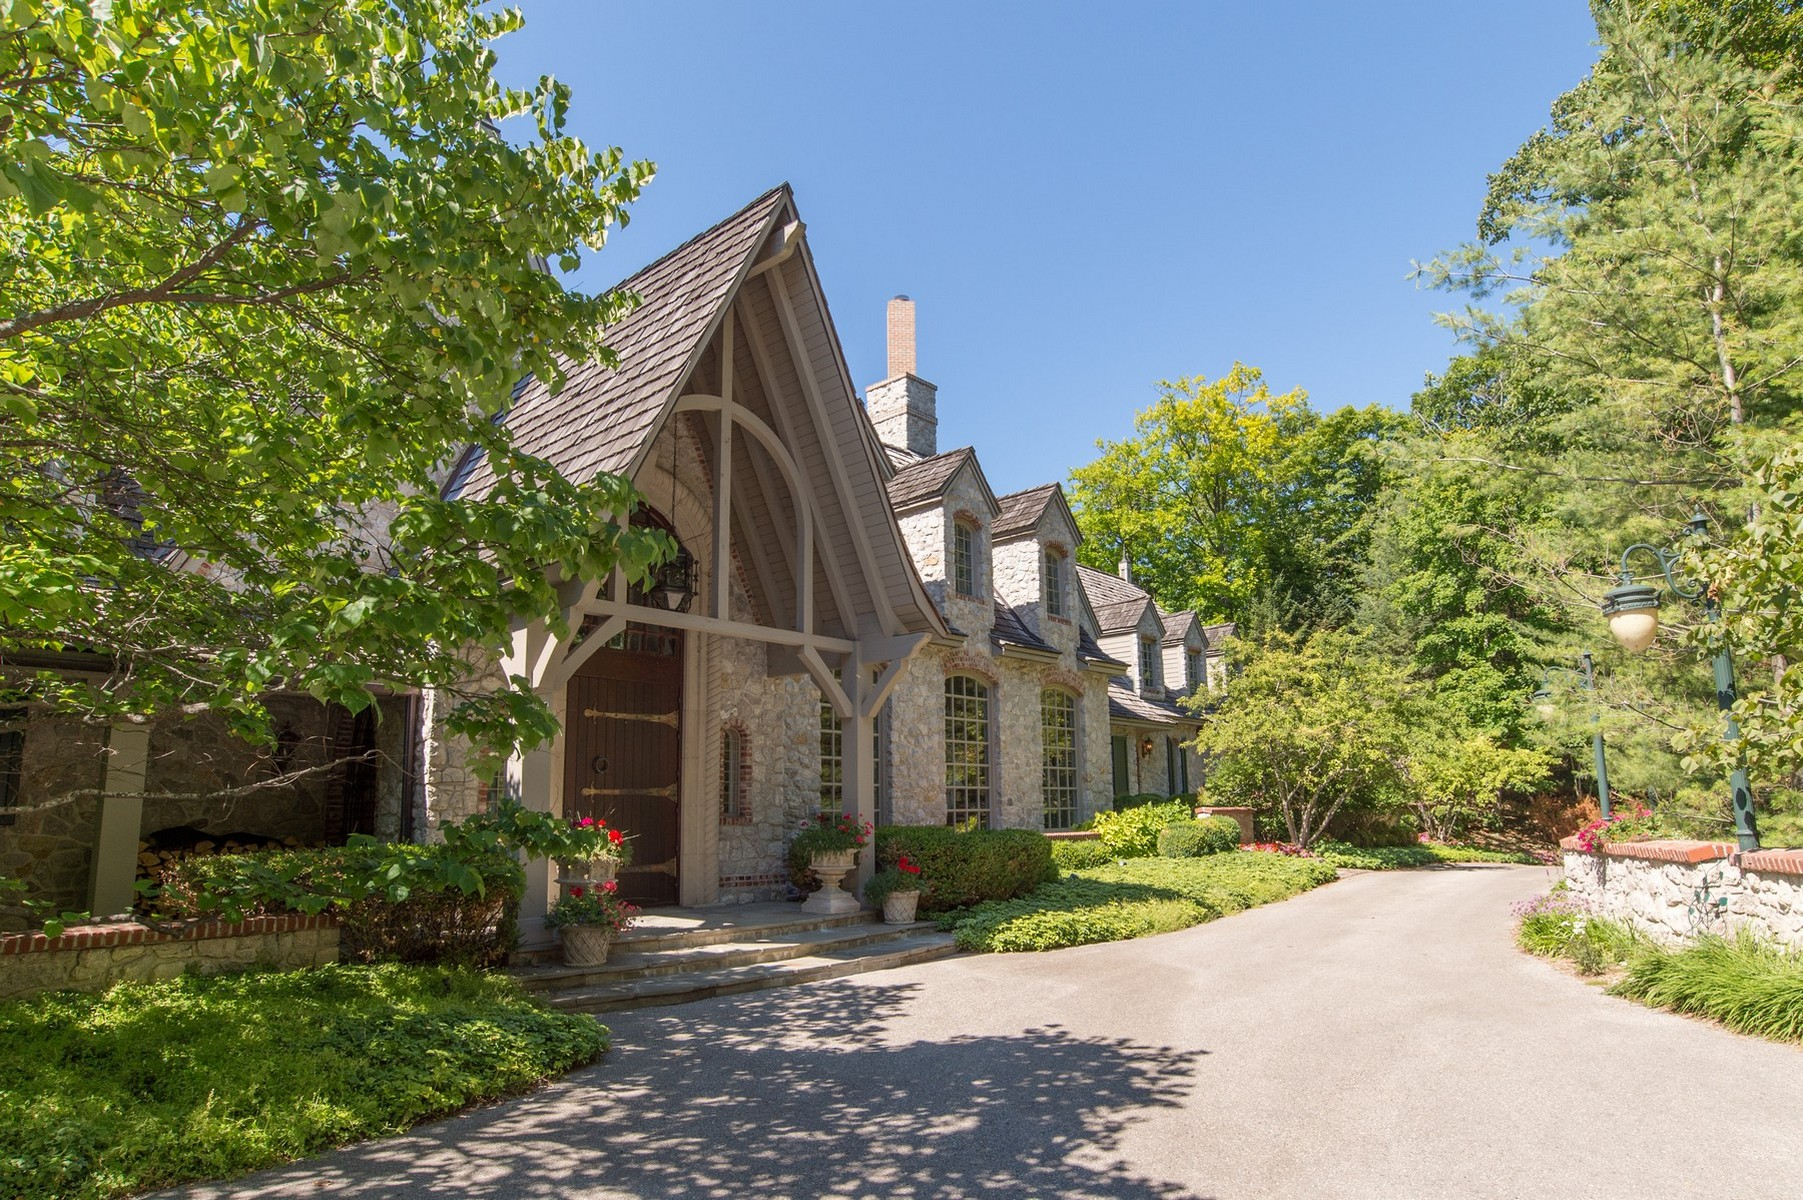 Single Family Home for Sale at Sandpiper Chateau 08625 Mt. McSauba Road Charlevoix, Michigan, 49720 United States